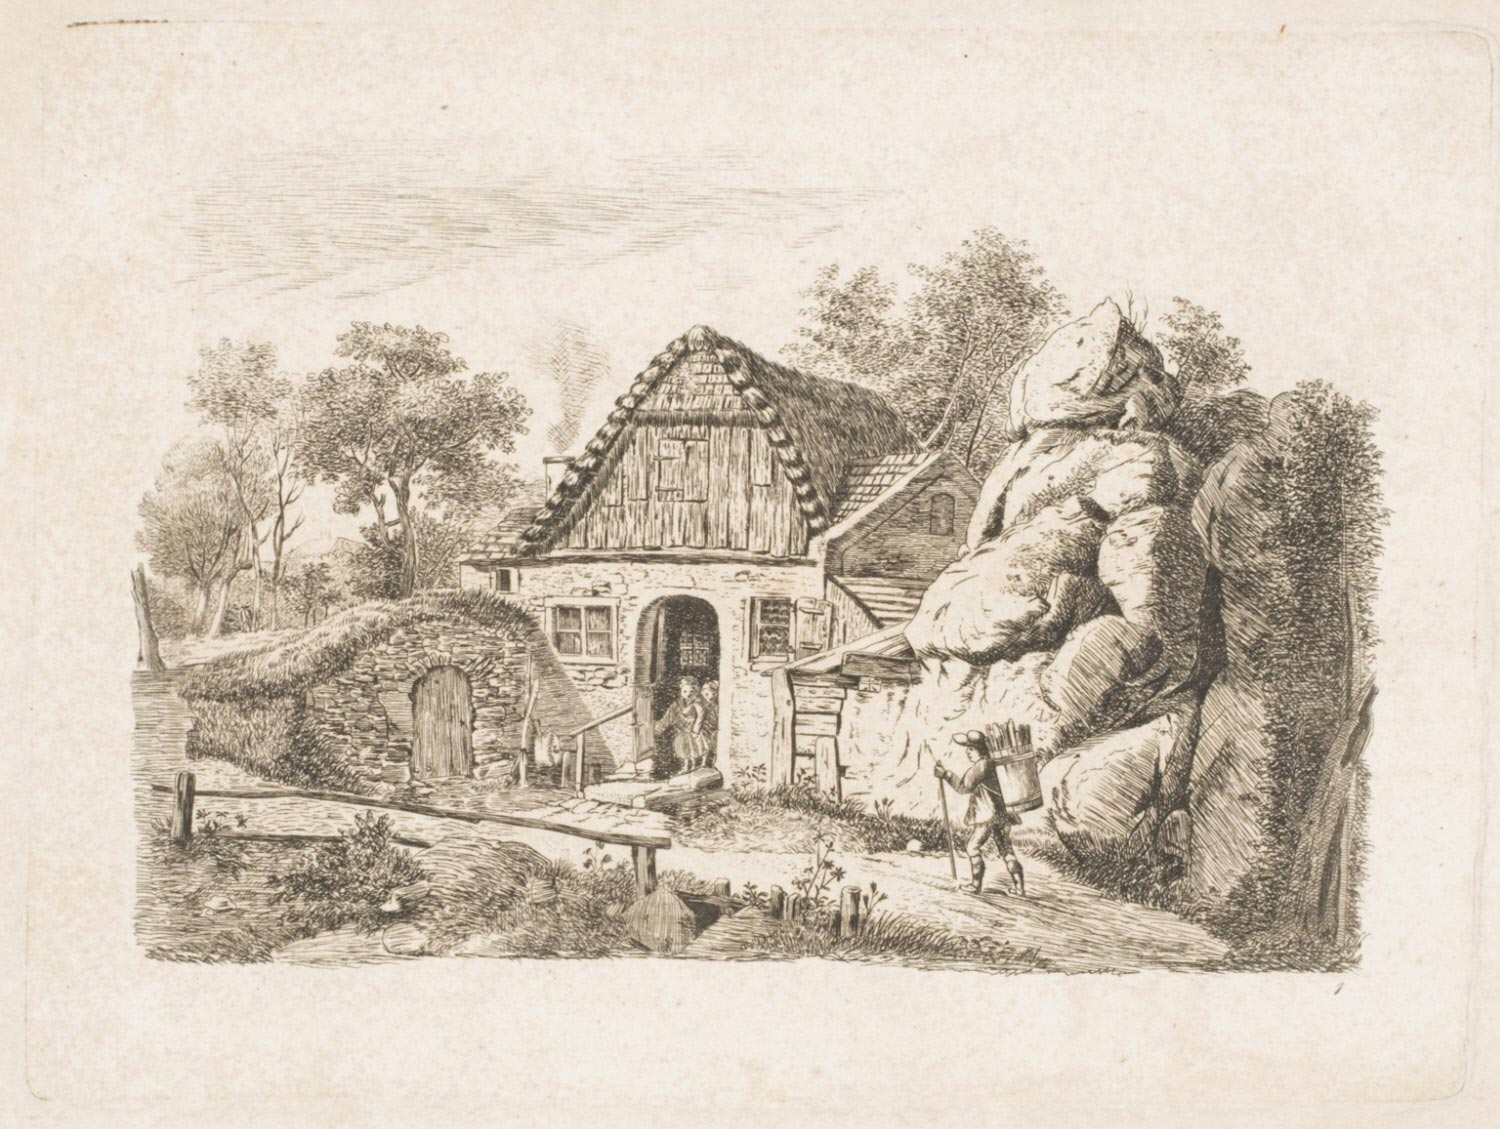 A Peasant Cottage next to a Large Outcropping of Rocks